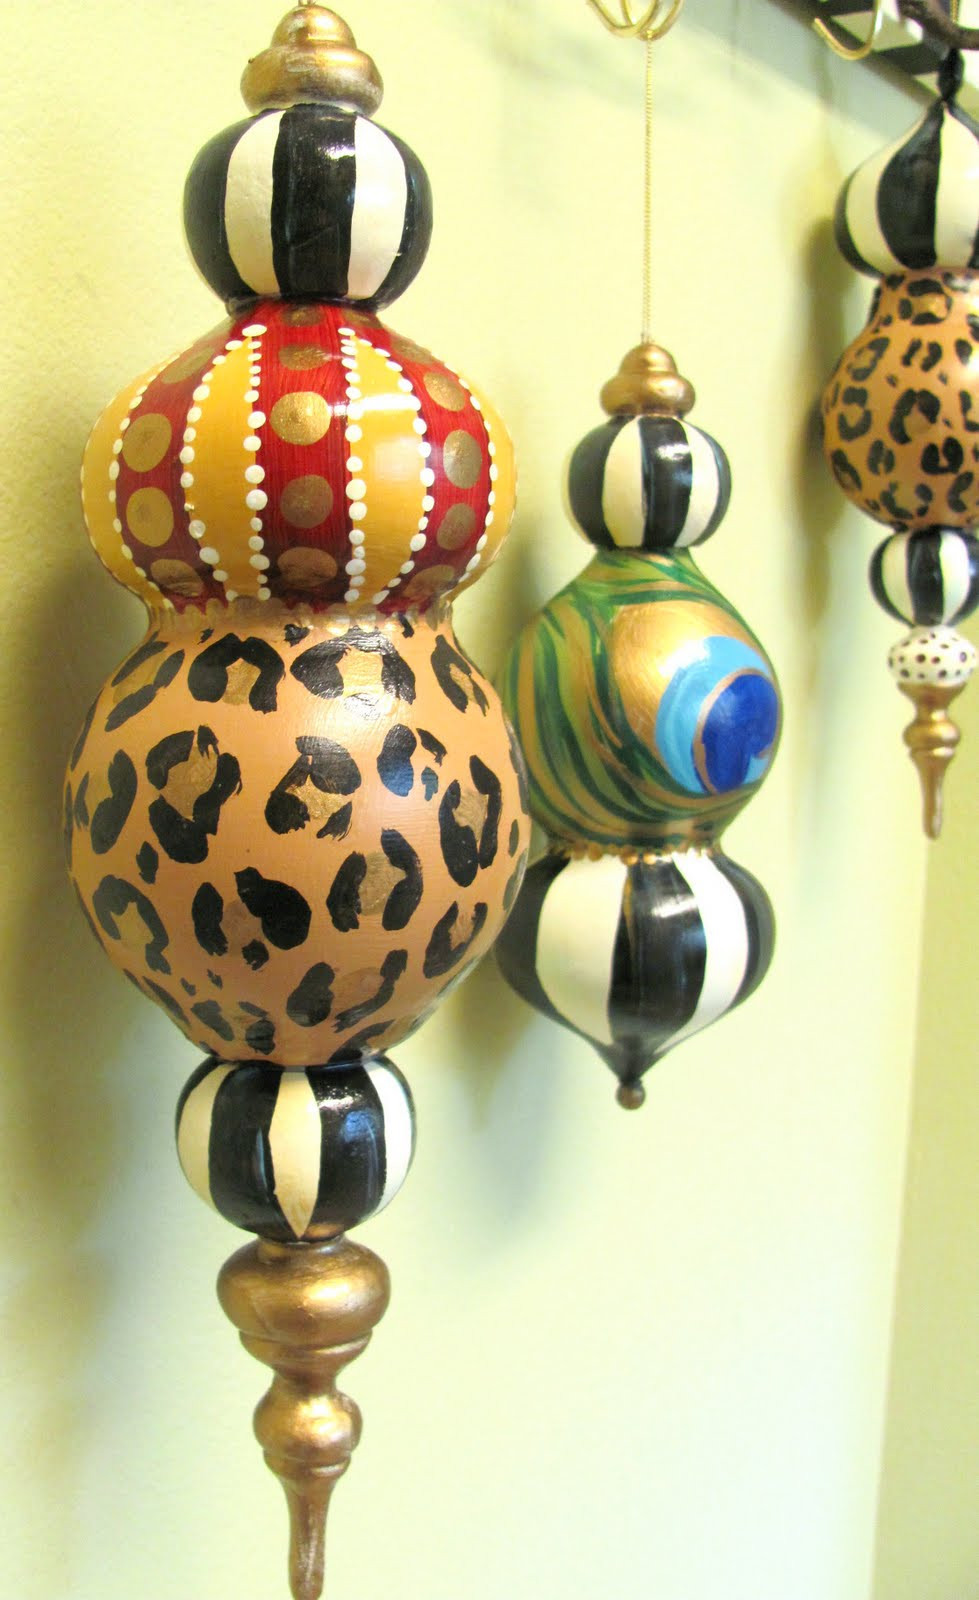 Christmas ornaments Luxury Hand Painted Christmas ornaments Whimsical Diy Of Incredible 48 Images Christmas ornaments